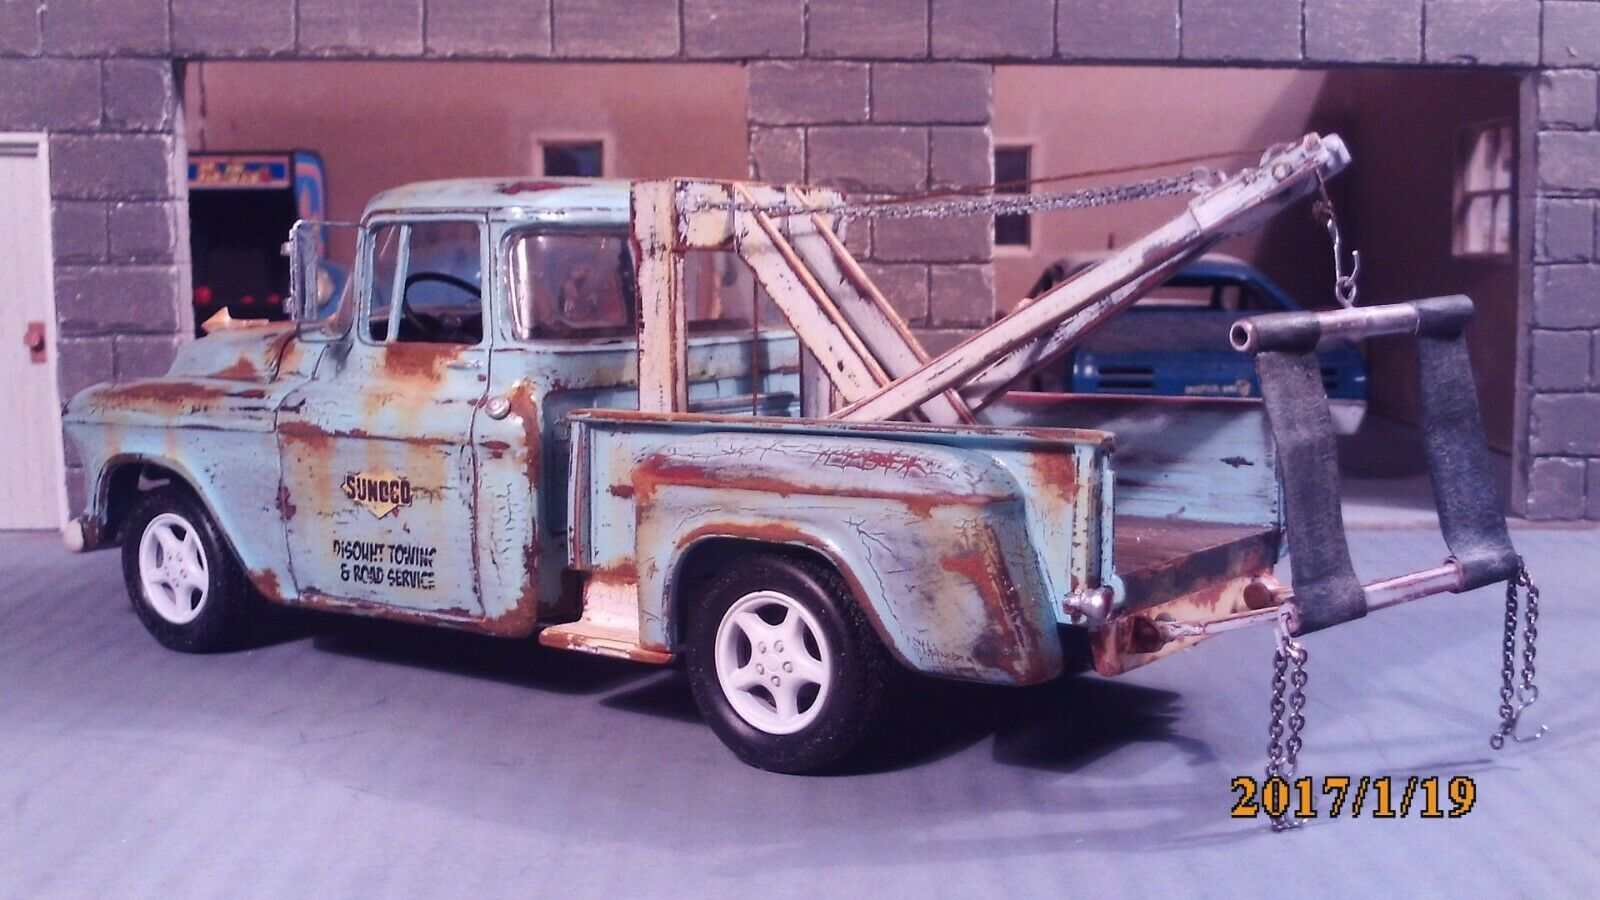 Built 57 Chevy Tow Truck Sunoco Gas Wrecker Weathered Rat Rod